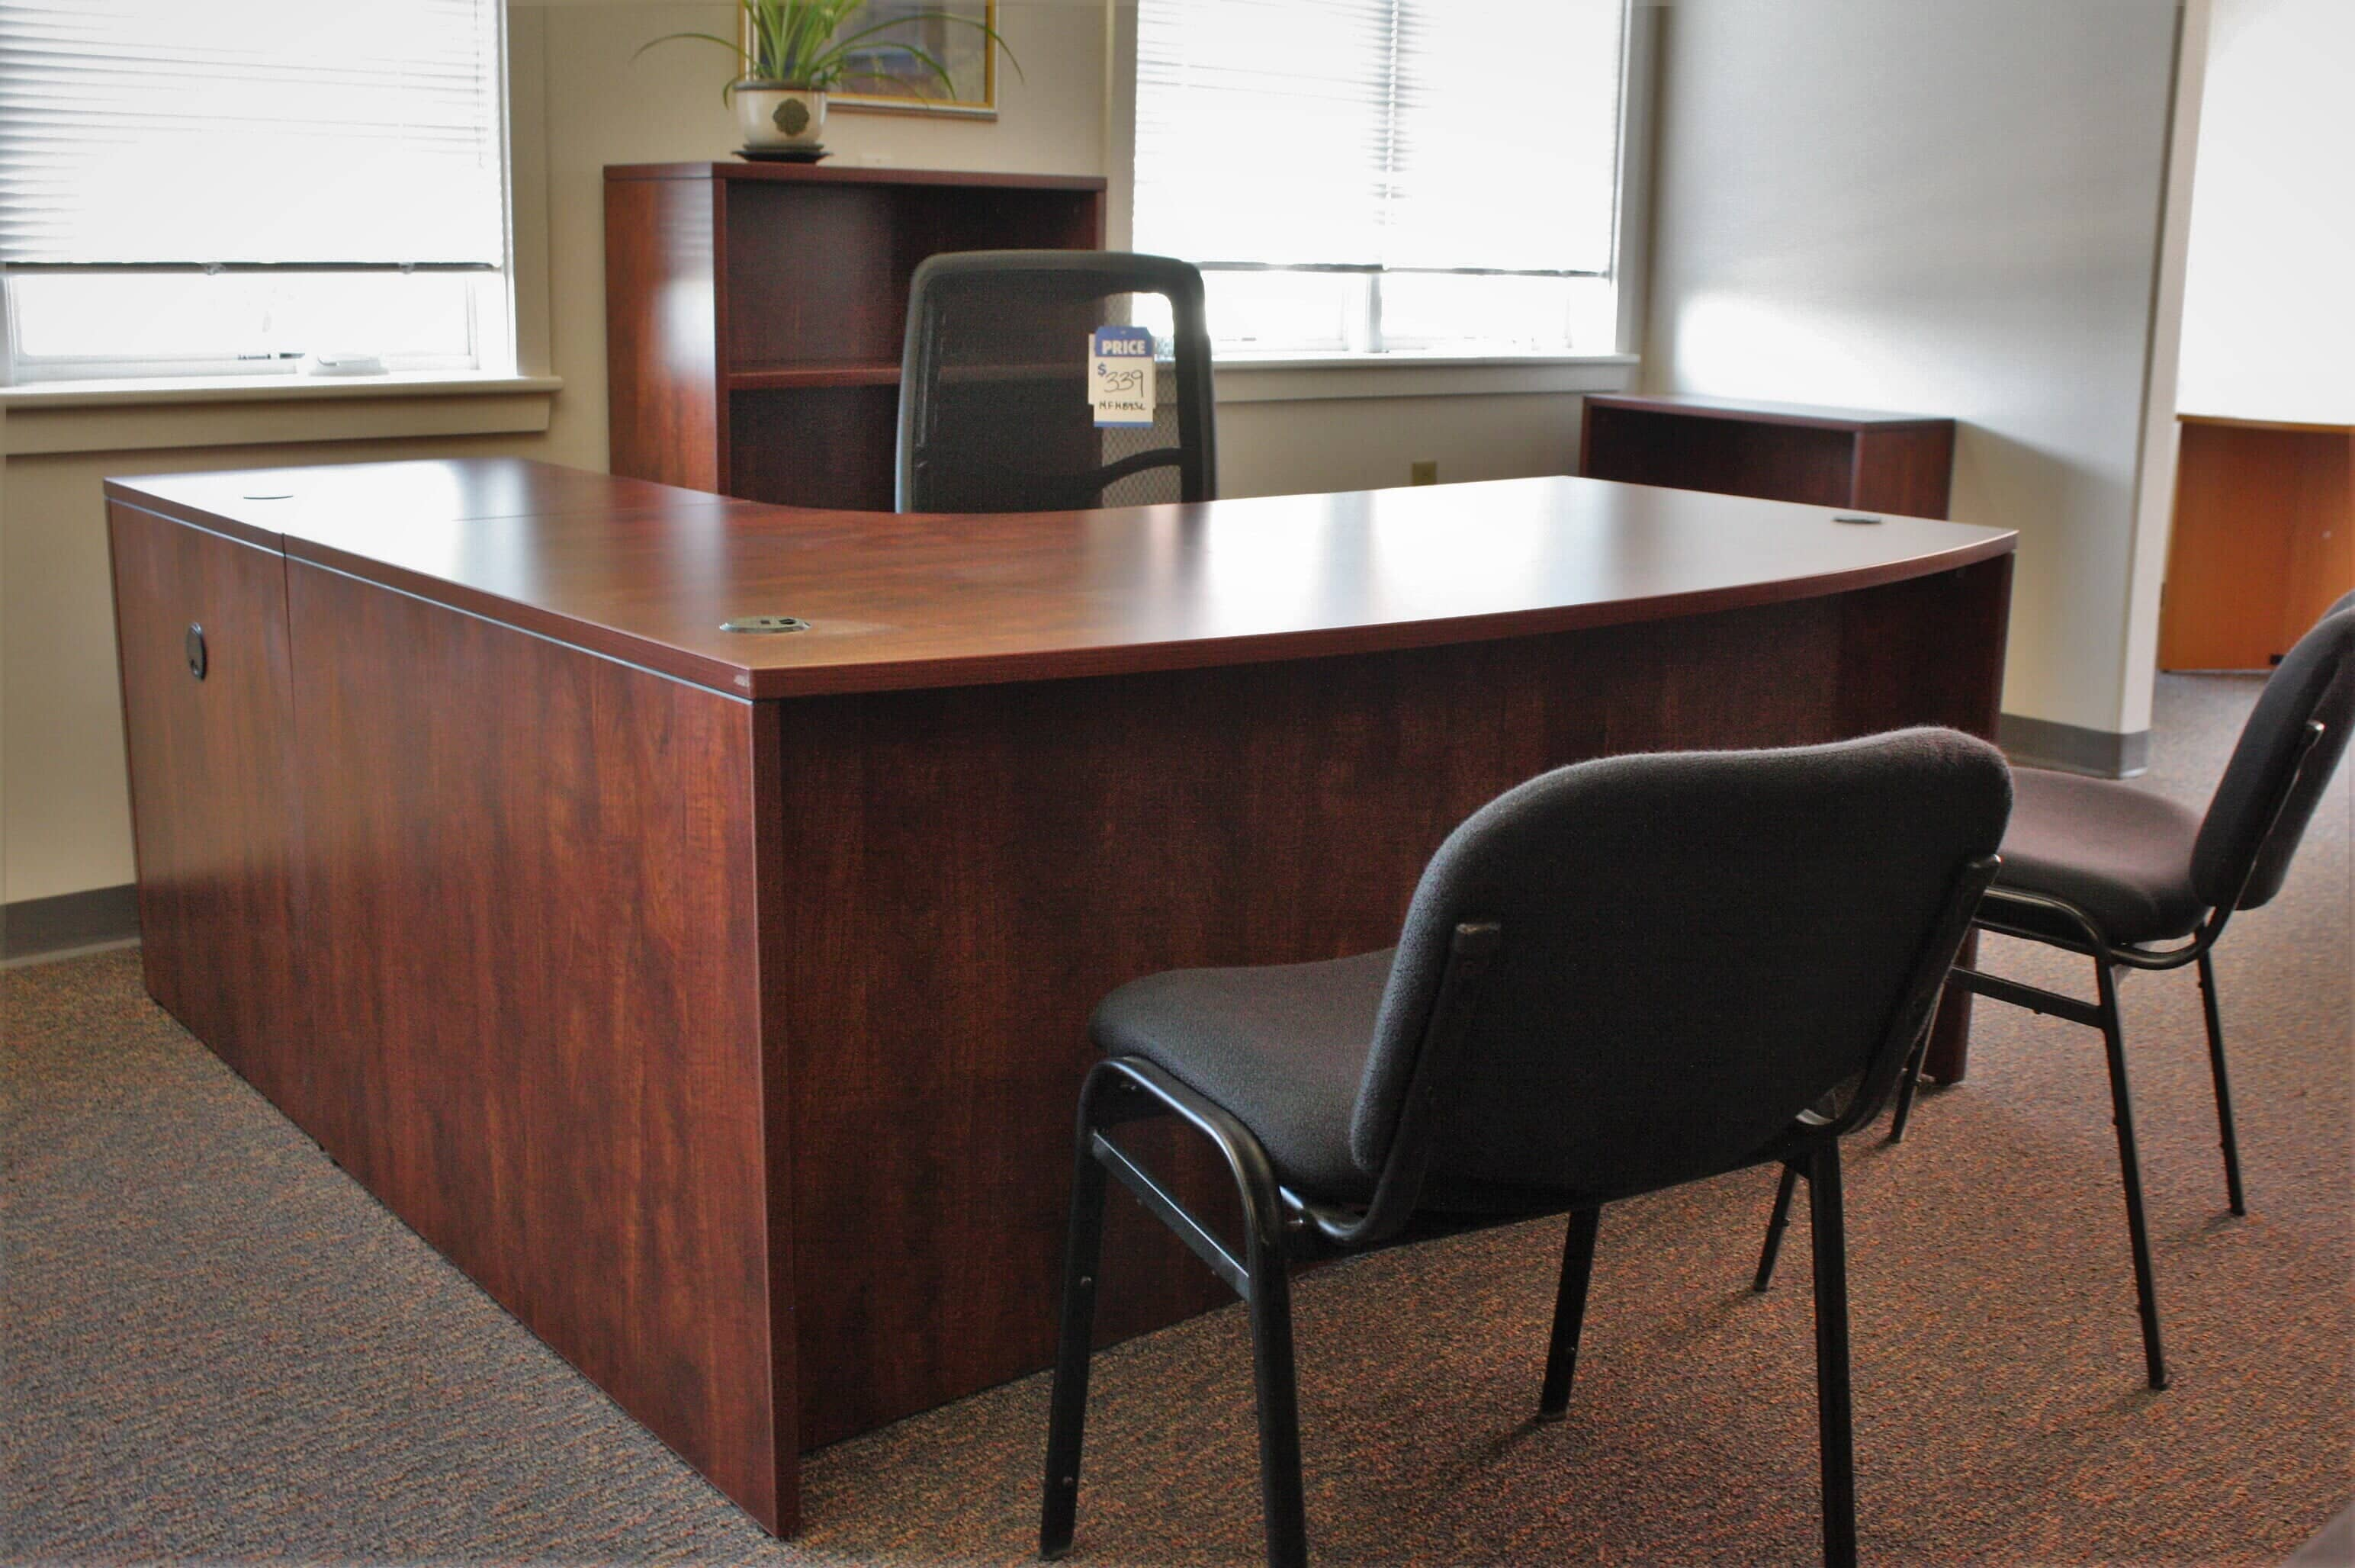 Office furniture exchange burlington vermont vt for Furniture exchange